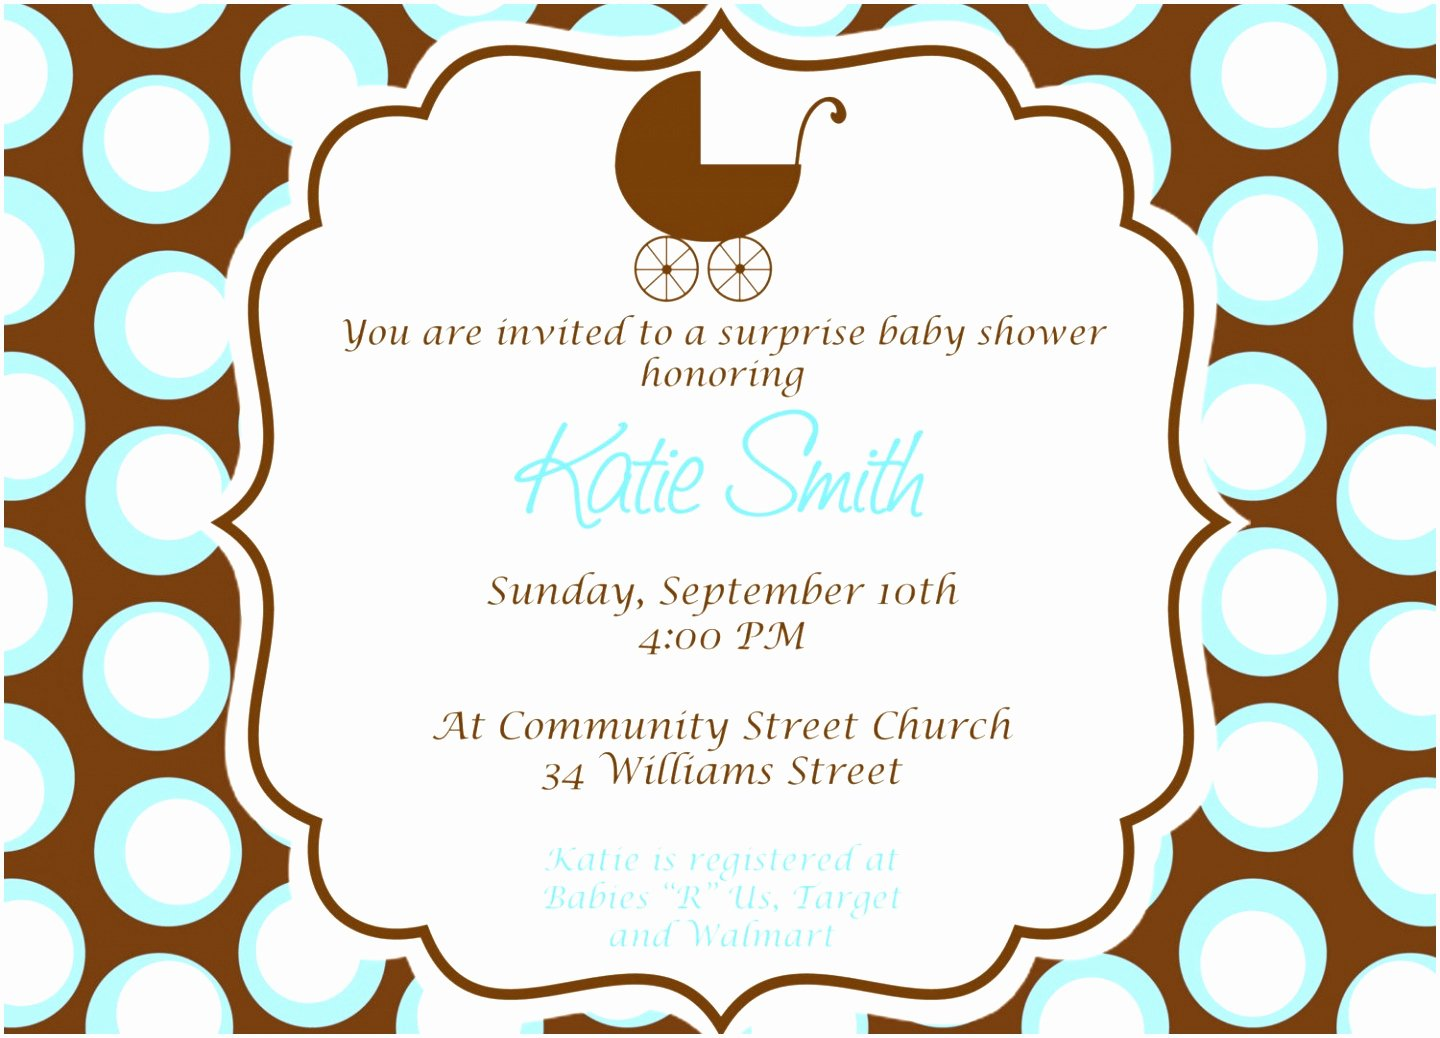 Baby Shower Template Word New 7 Baby Shower Flyer Template Word Uowiu